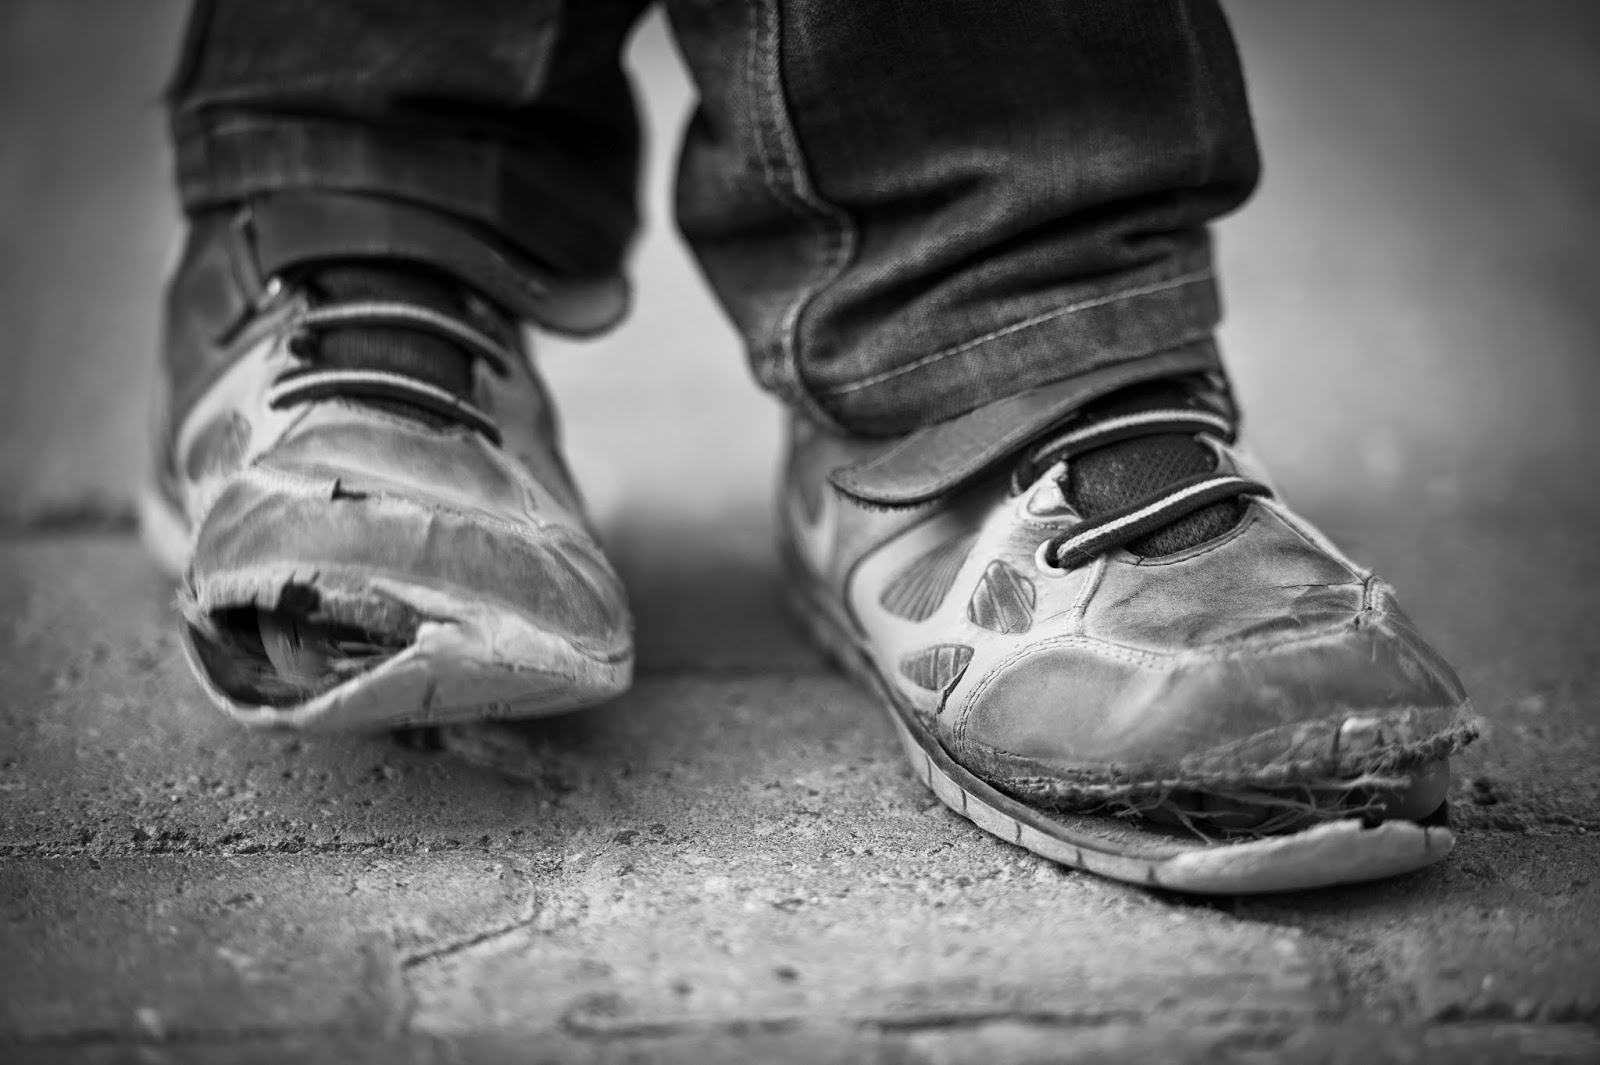 Poverty shapes how children think about themselves